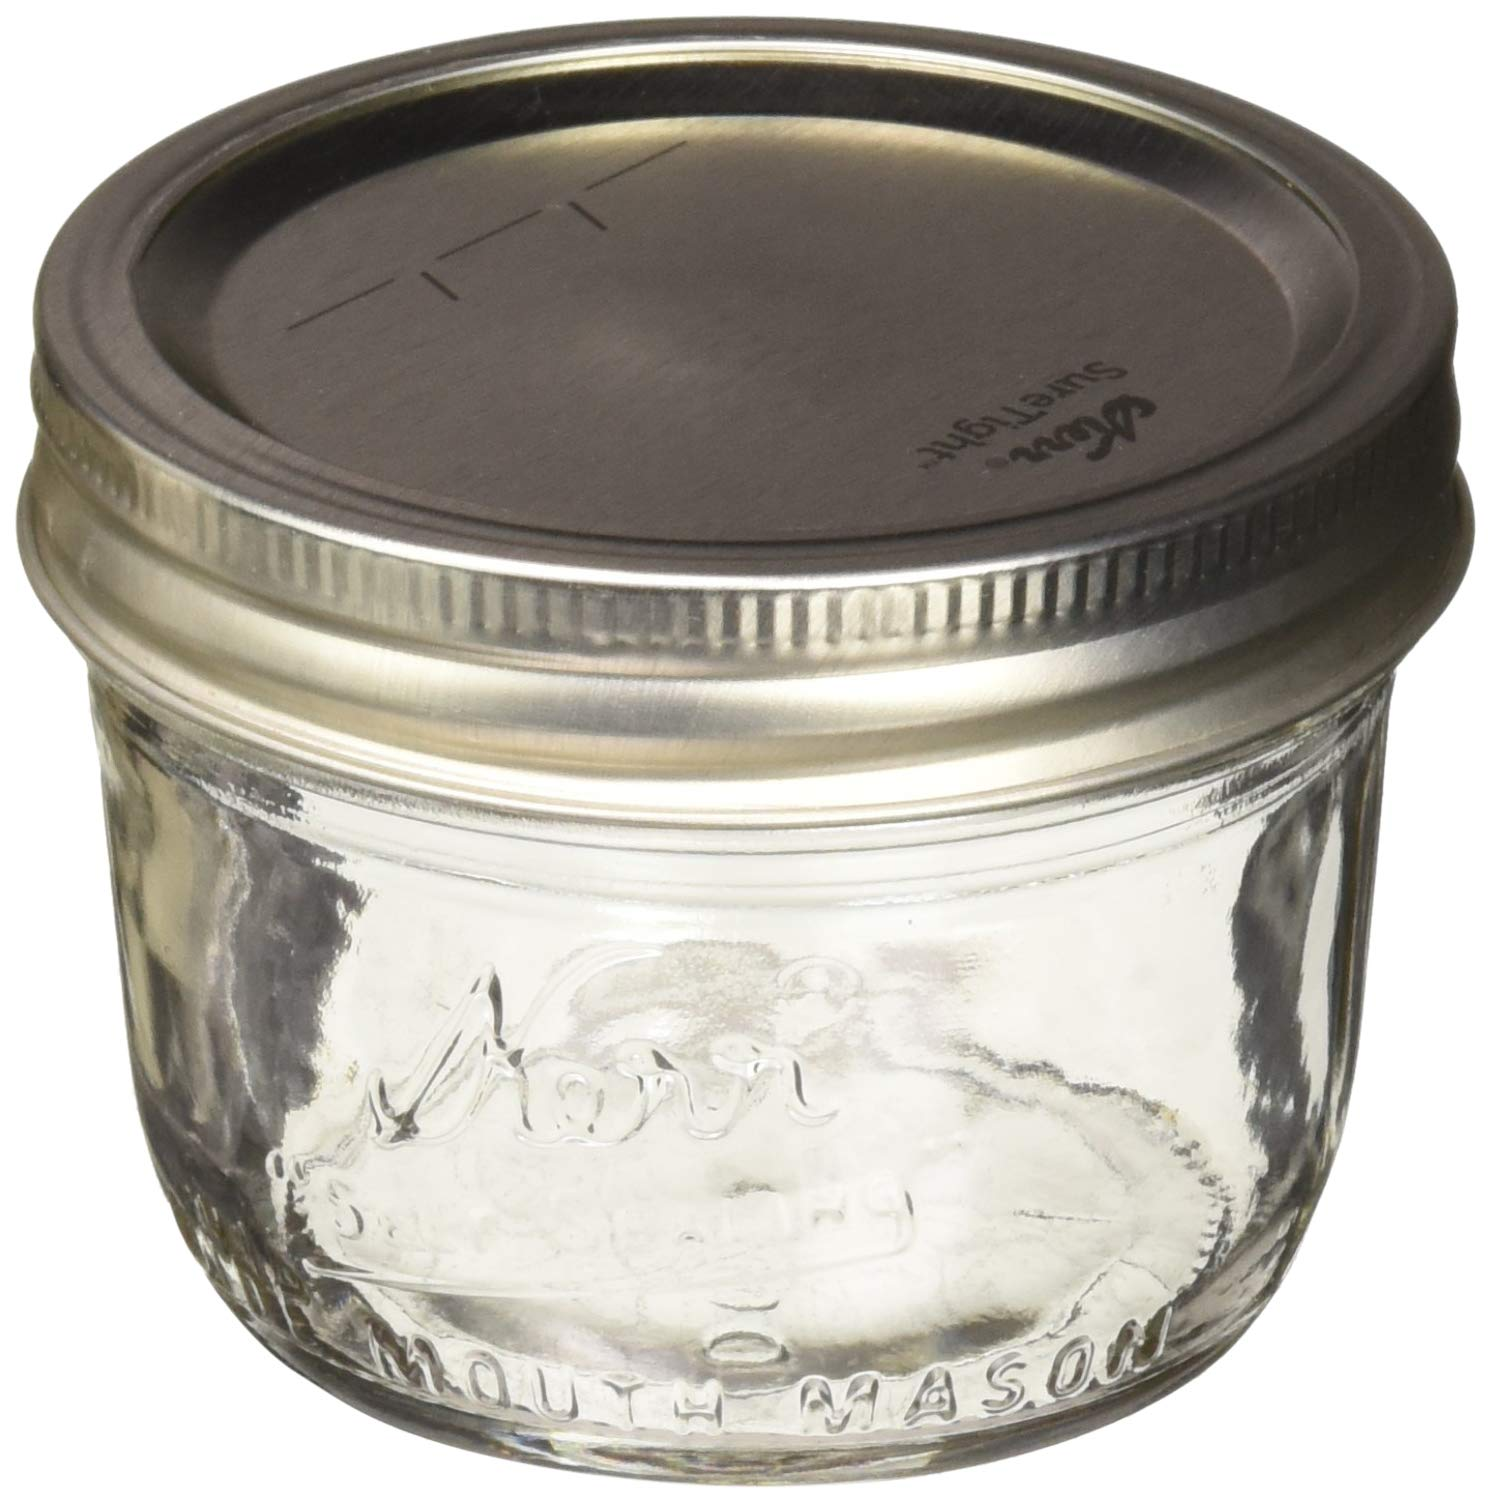 Kerr Wide Mouth Half-Pint Glass Mason Jars 8-Ounces with Lids and Bands 12-Count per Case (1-Case) by Kerr (Image #1)